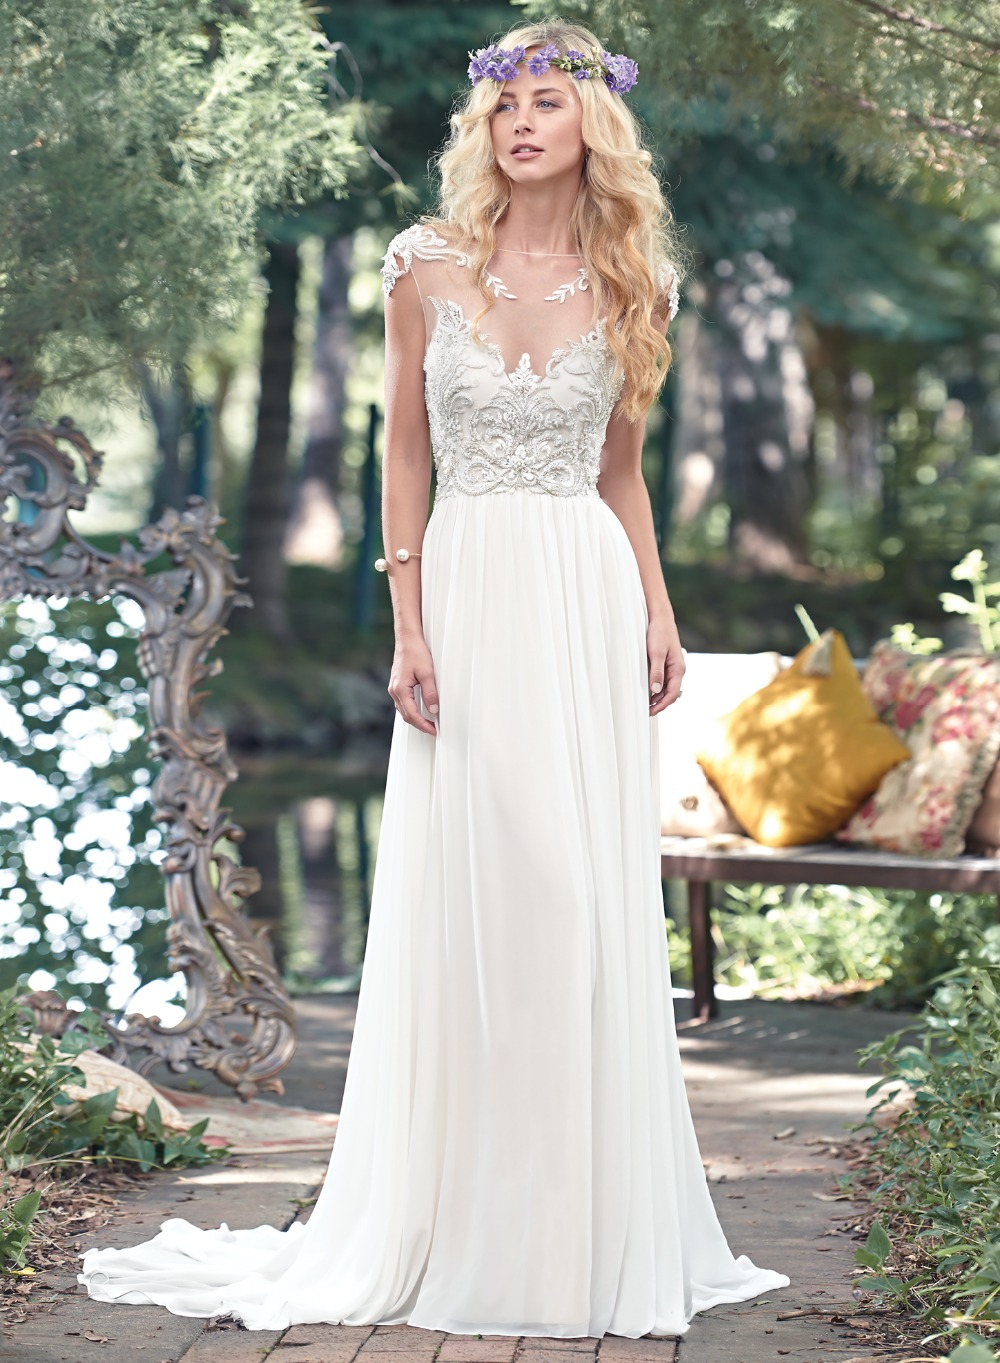 Lace Wedding Dress 2016 See Through Sexy Beach Wedding Dresses Court Train Beaded China Online Store Robe De Mariage W122410